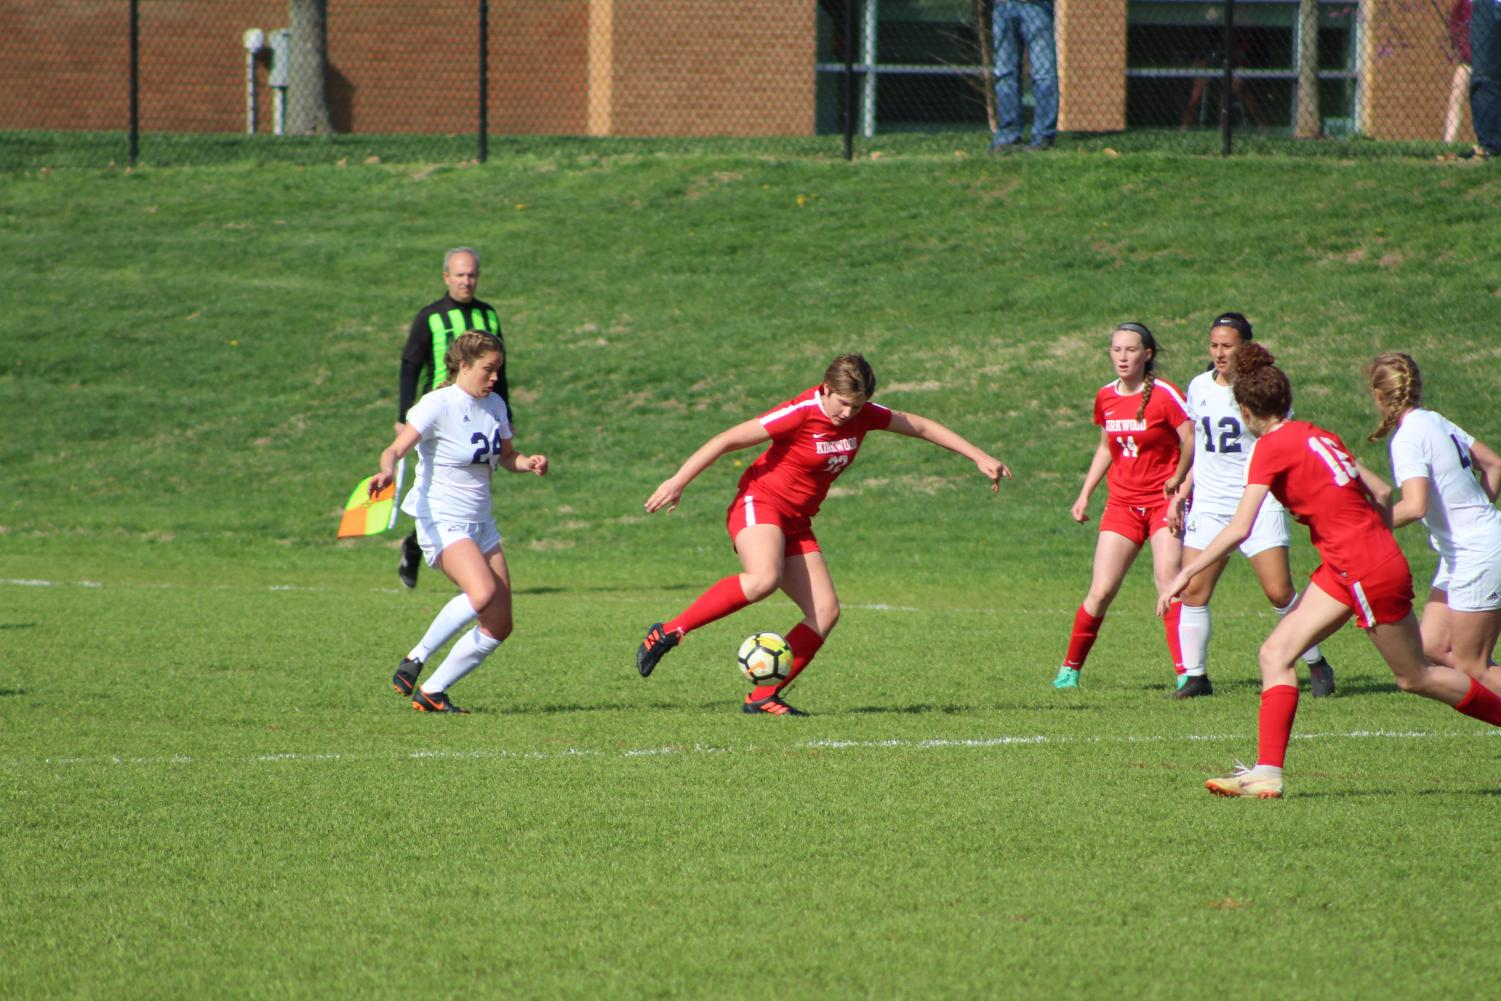 Evie Borbonus, sophomore,  makes sure the opposing team doesn't get the ball.